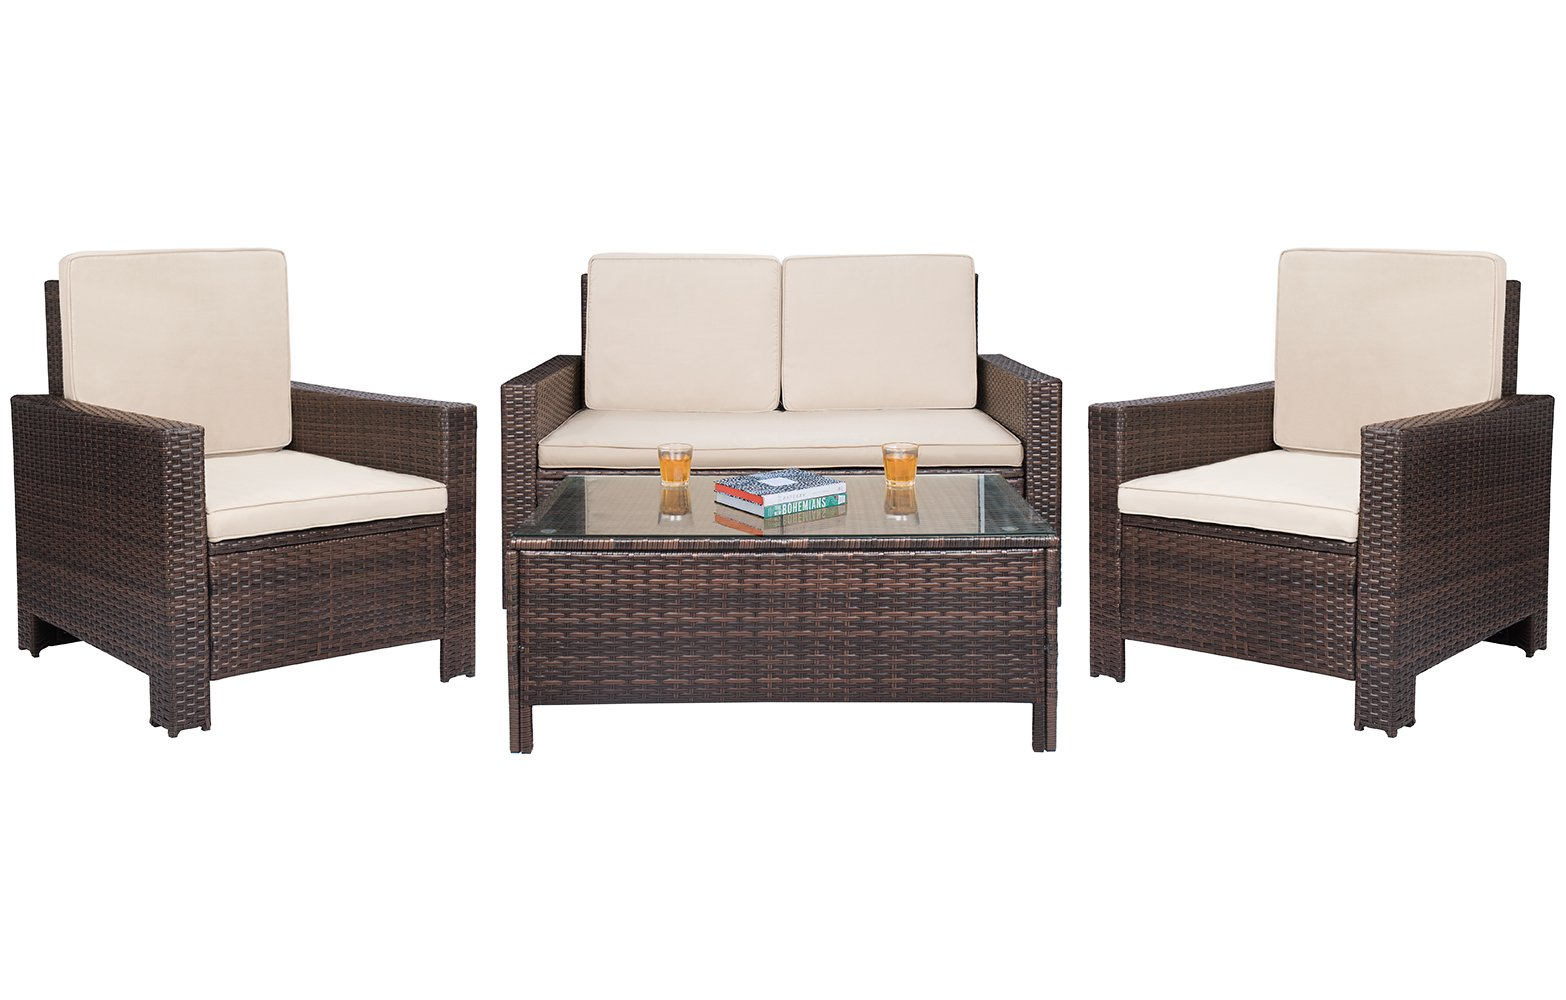 Patio Furniture Sets Clearance 4 PC Wicker Outdoor Sofa Set Rattan Sectional Sofa,for Backyard Porch Garden Poolside Balcony with Beige Cushion (Brown)